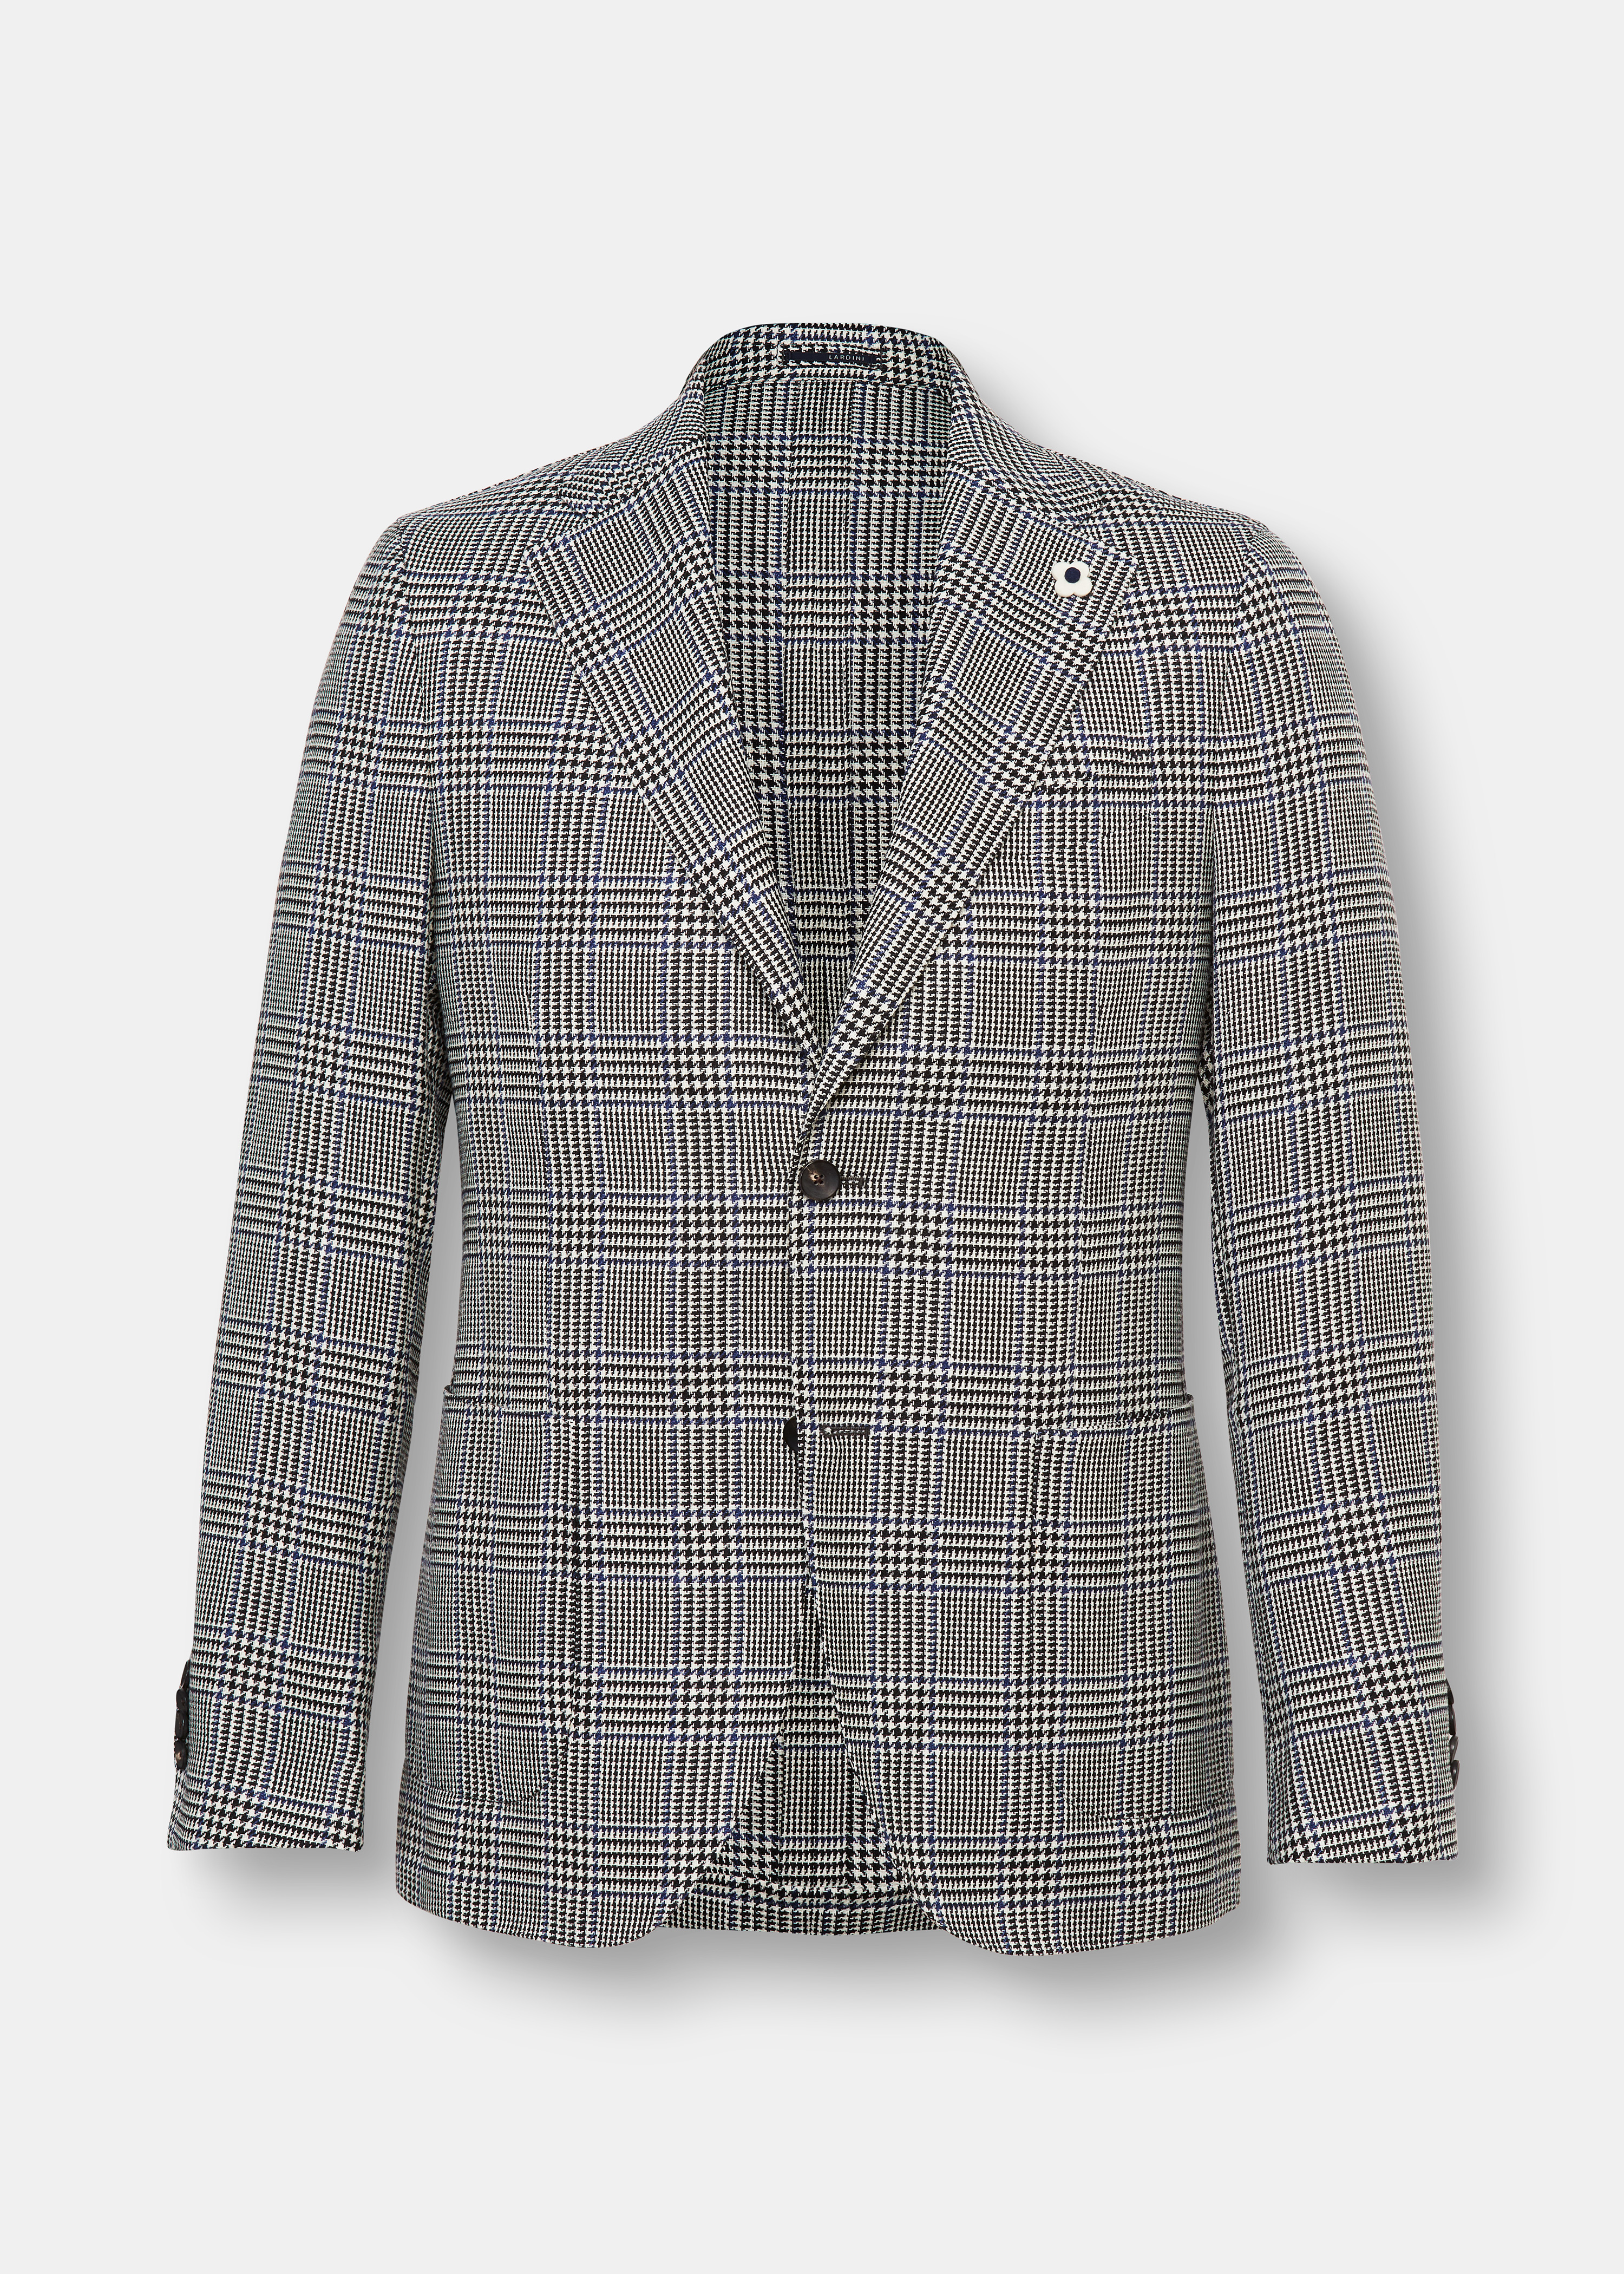 Check Wool Blend Single Breasted Jacket